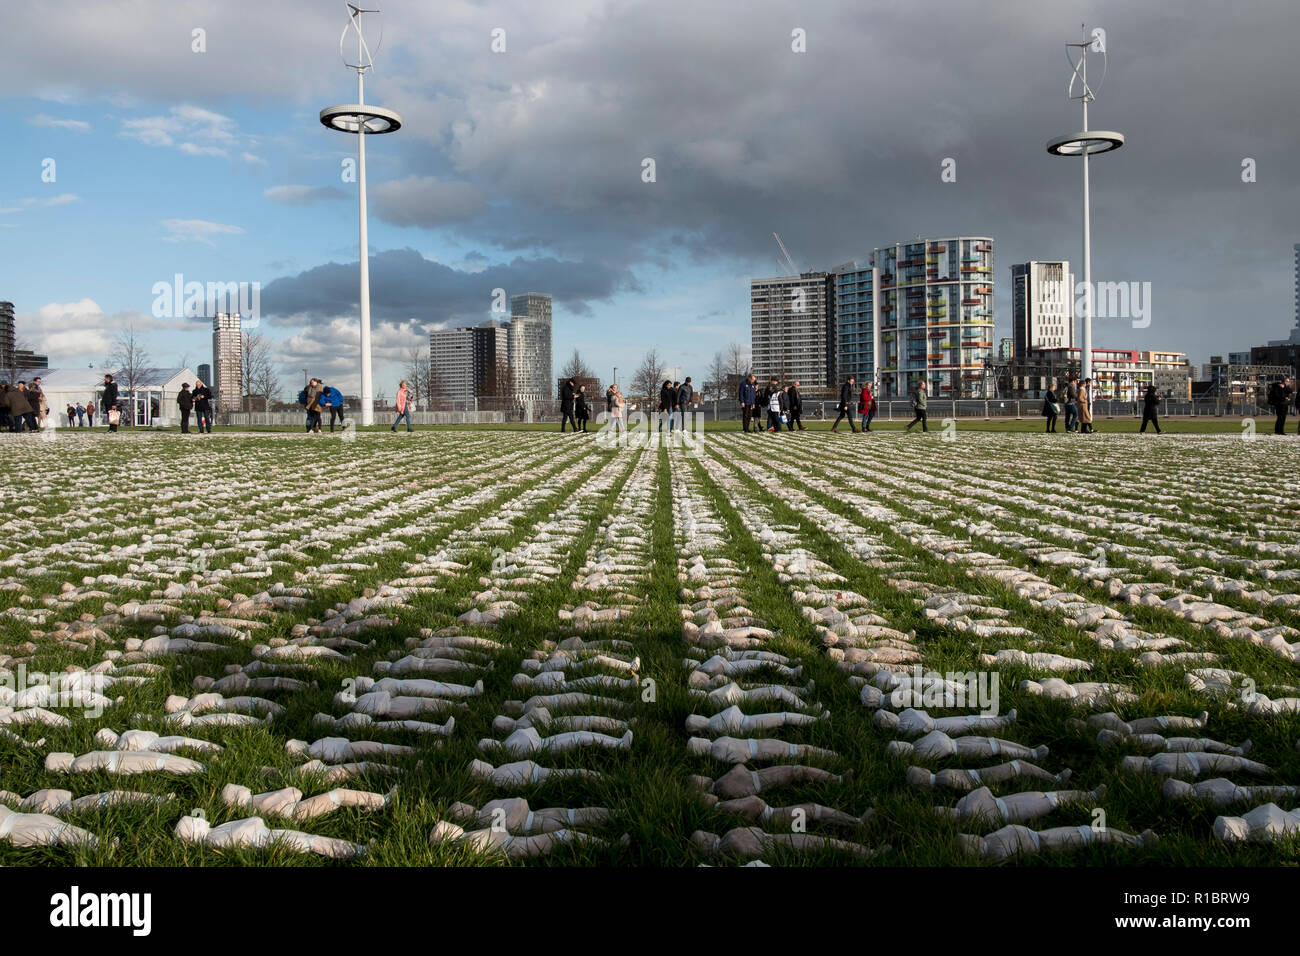 Stratford, London, UK. 11th November 2018. The Artist Rob Heard's installation representing the fallen soldiers from the First World War. Tens of thousands of shrouded figures  laid out at London's Olympic Park to mark the centenary of the end of World War One. Each handmade 12-inch model represents one of the 72,396 British Commonwealth serviceman killed at the Somme with no known grave.  In total, more than one million soldiers were killed or wounded during the 1916 Battle of the Somme.. Credit: Mike Abrahams/Alamy Live News - Stock Image